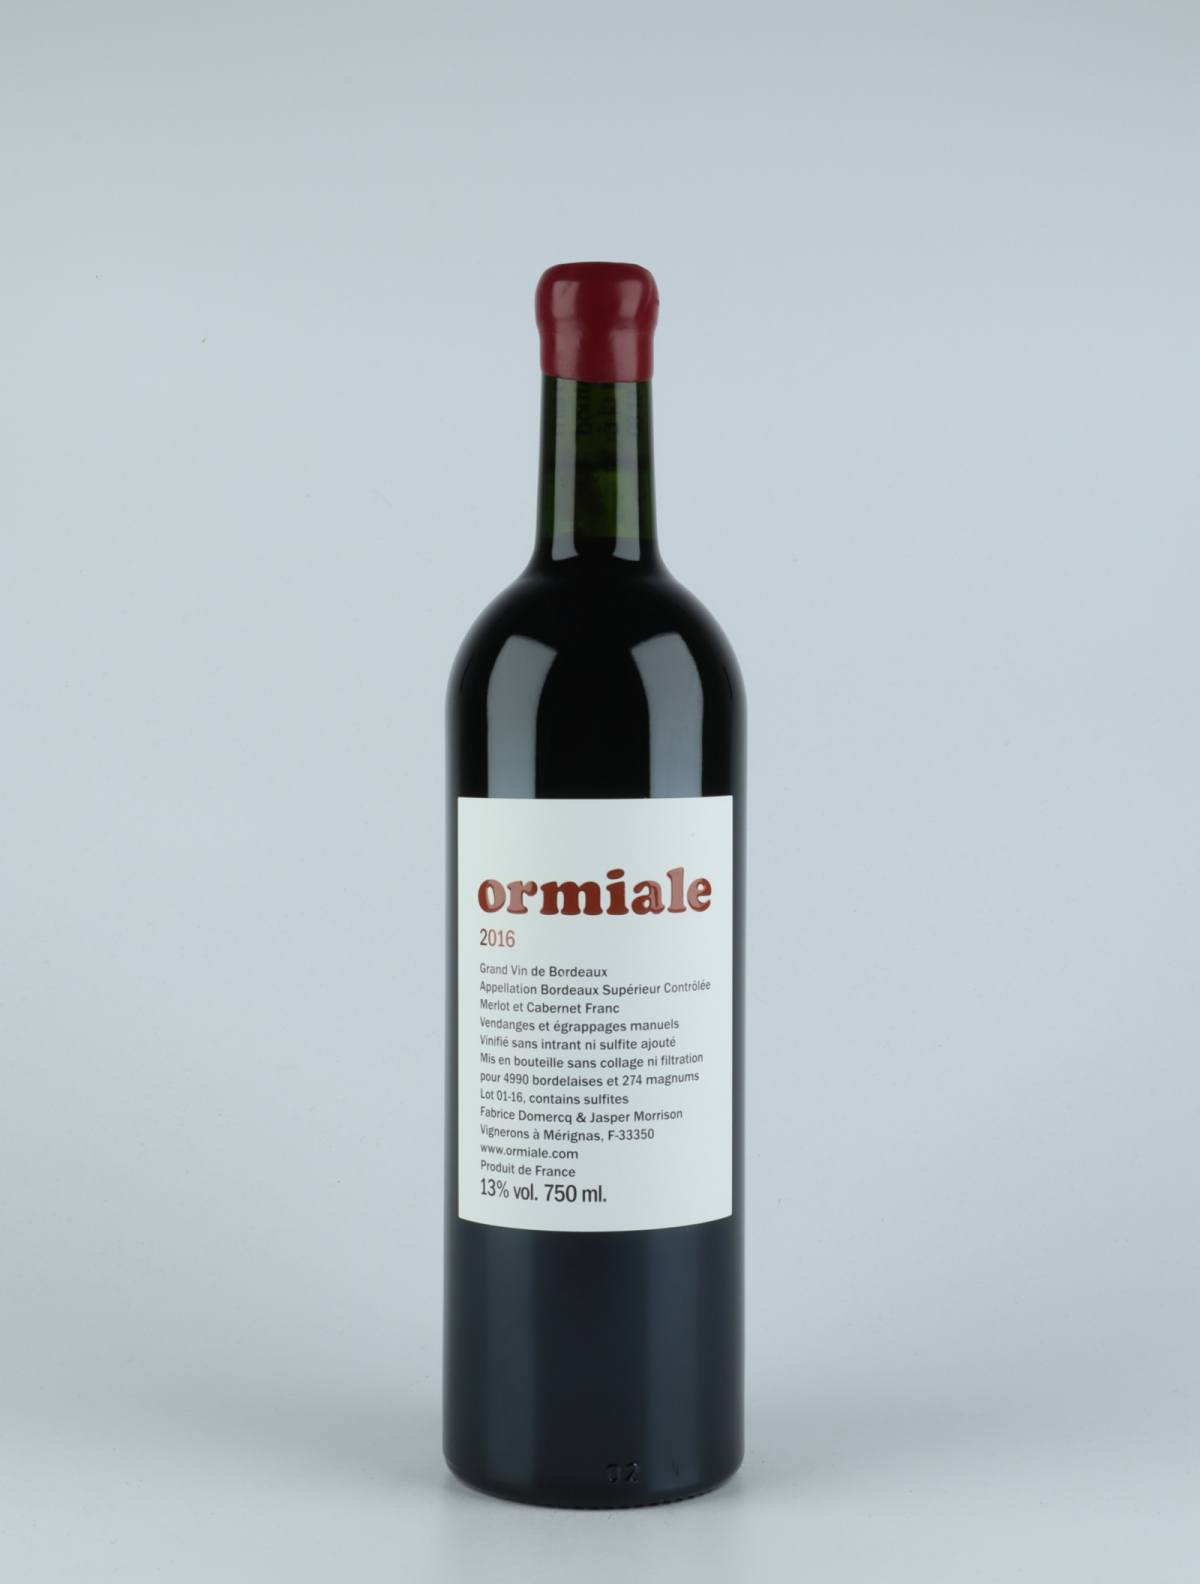 Ormiale